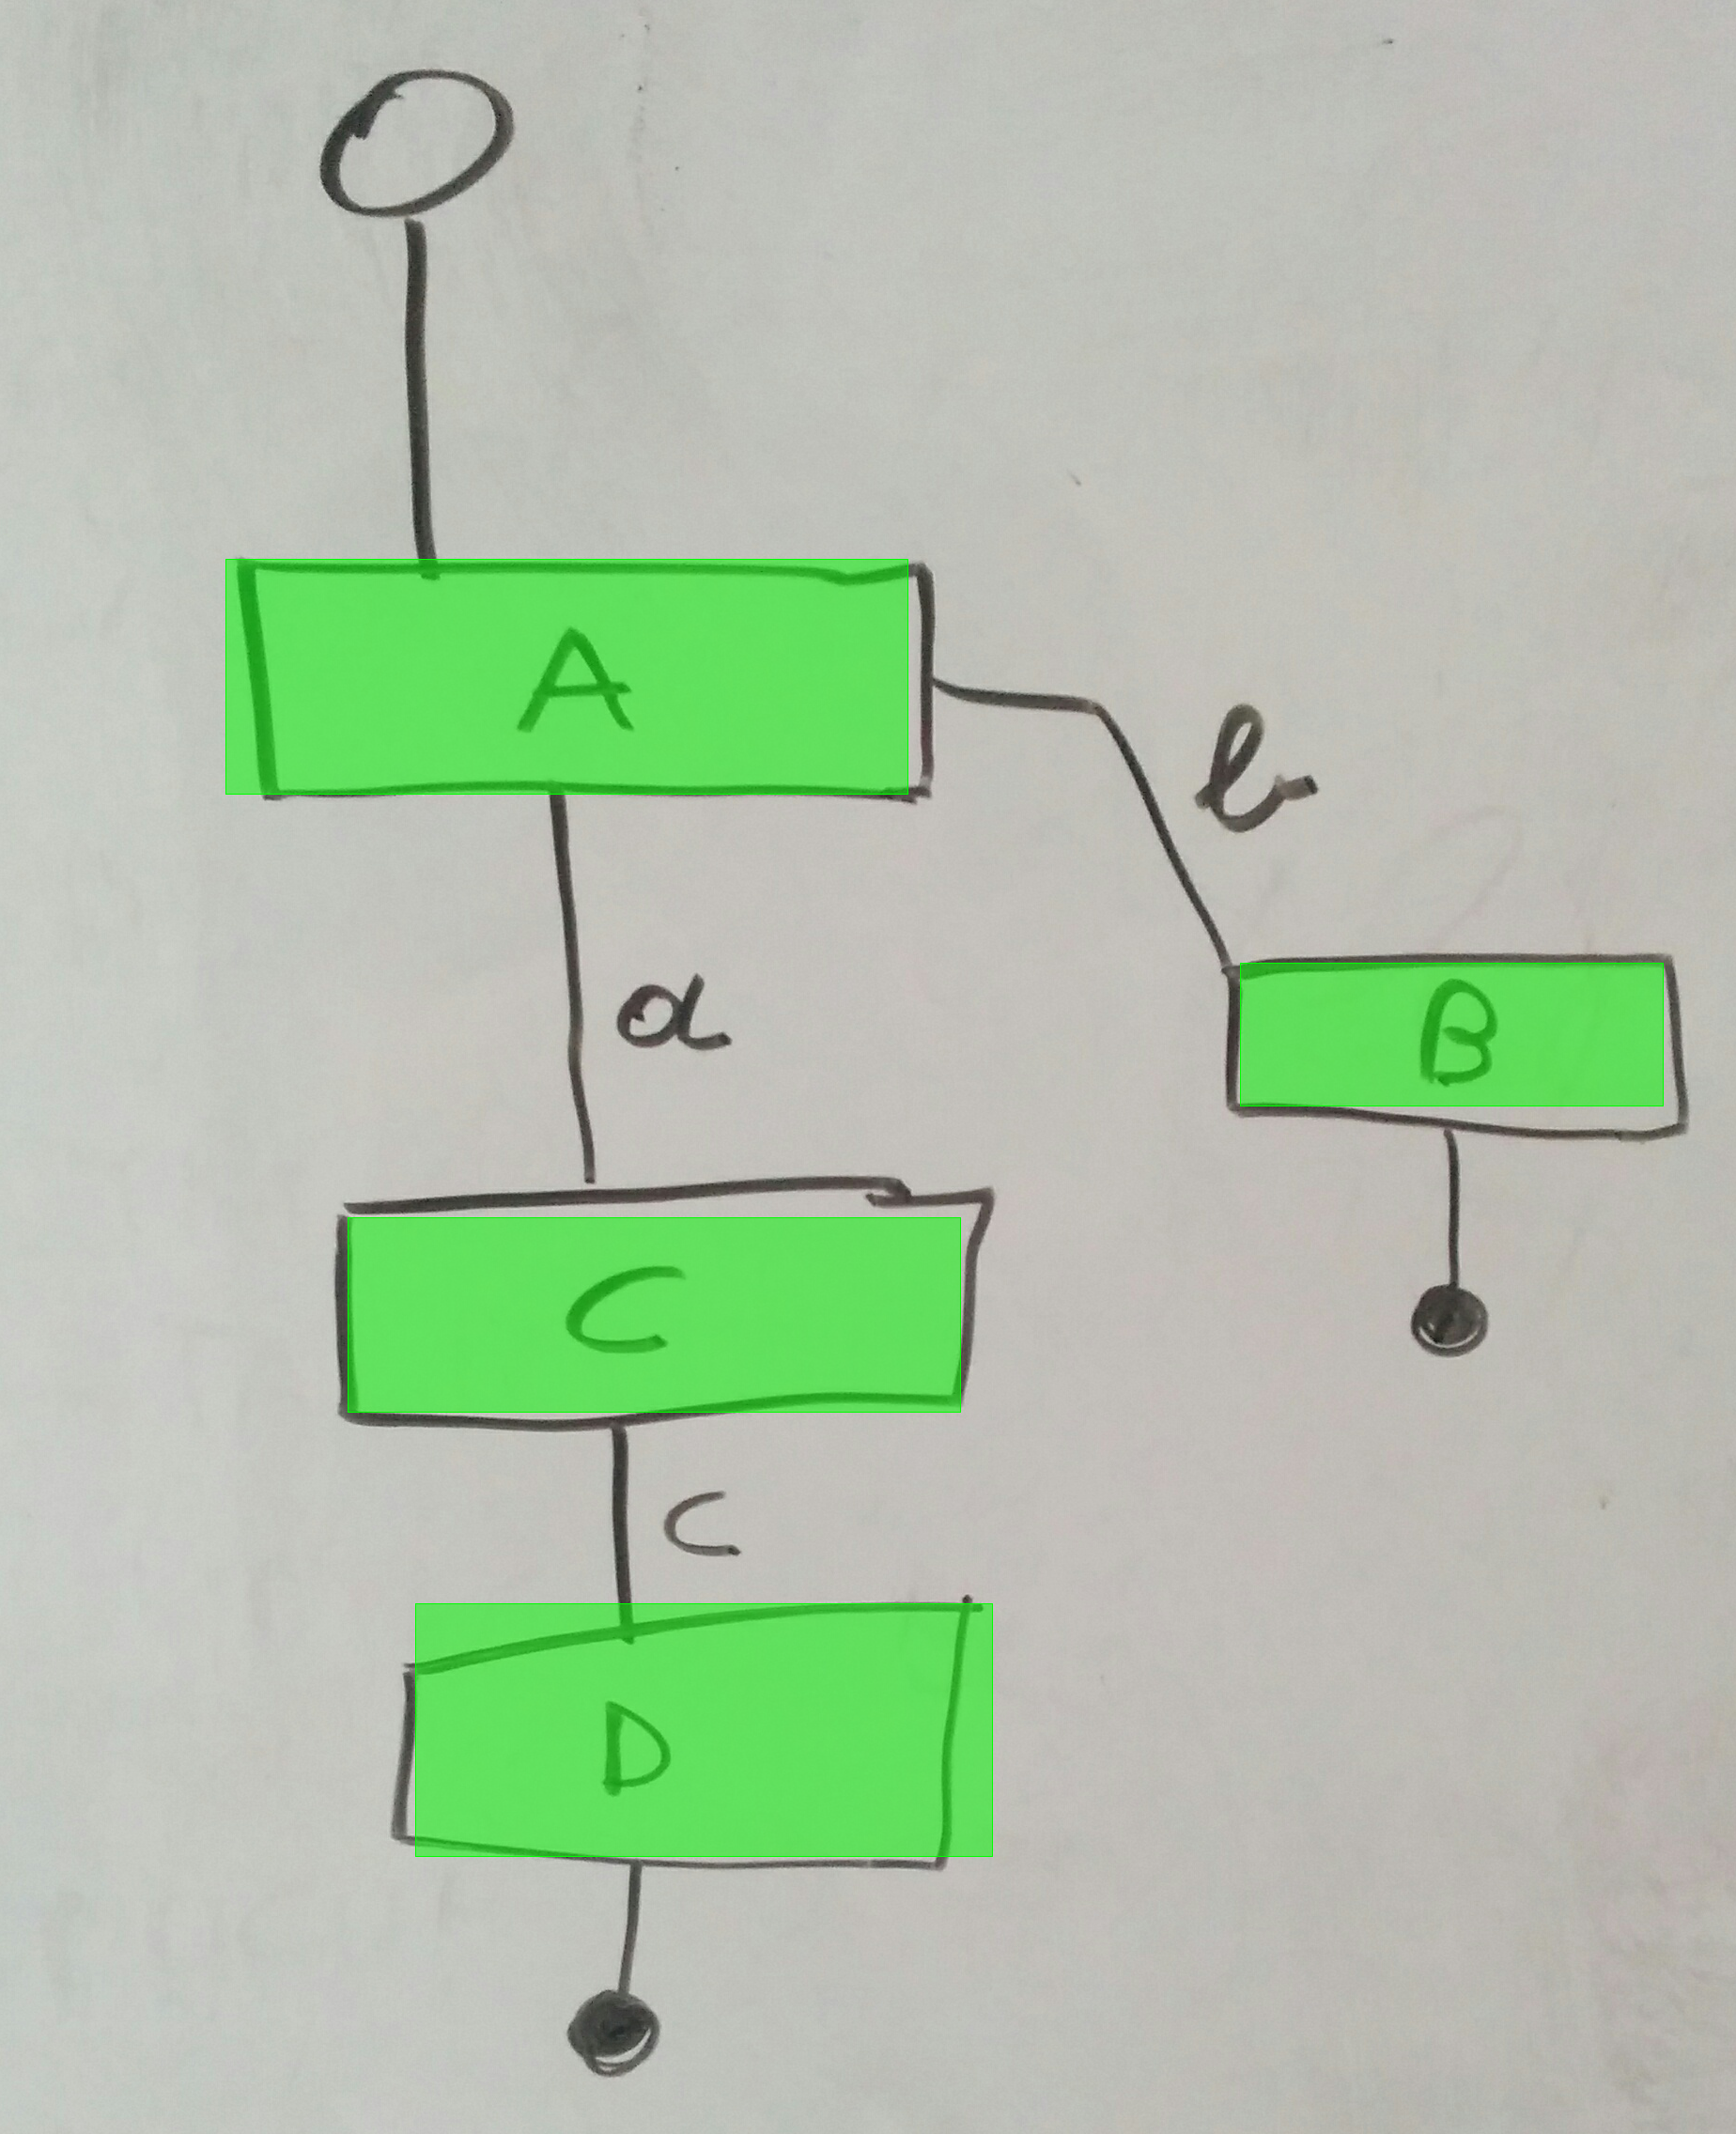 Recognizing hand-written rectangles in an image - Federico